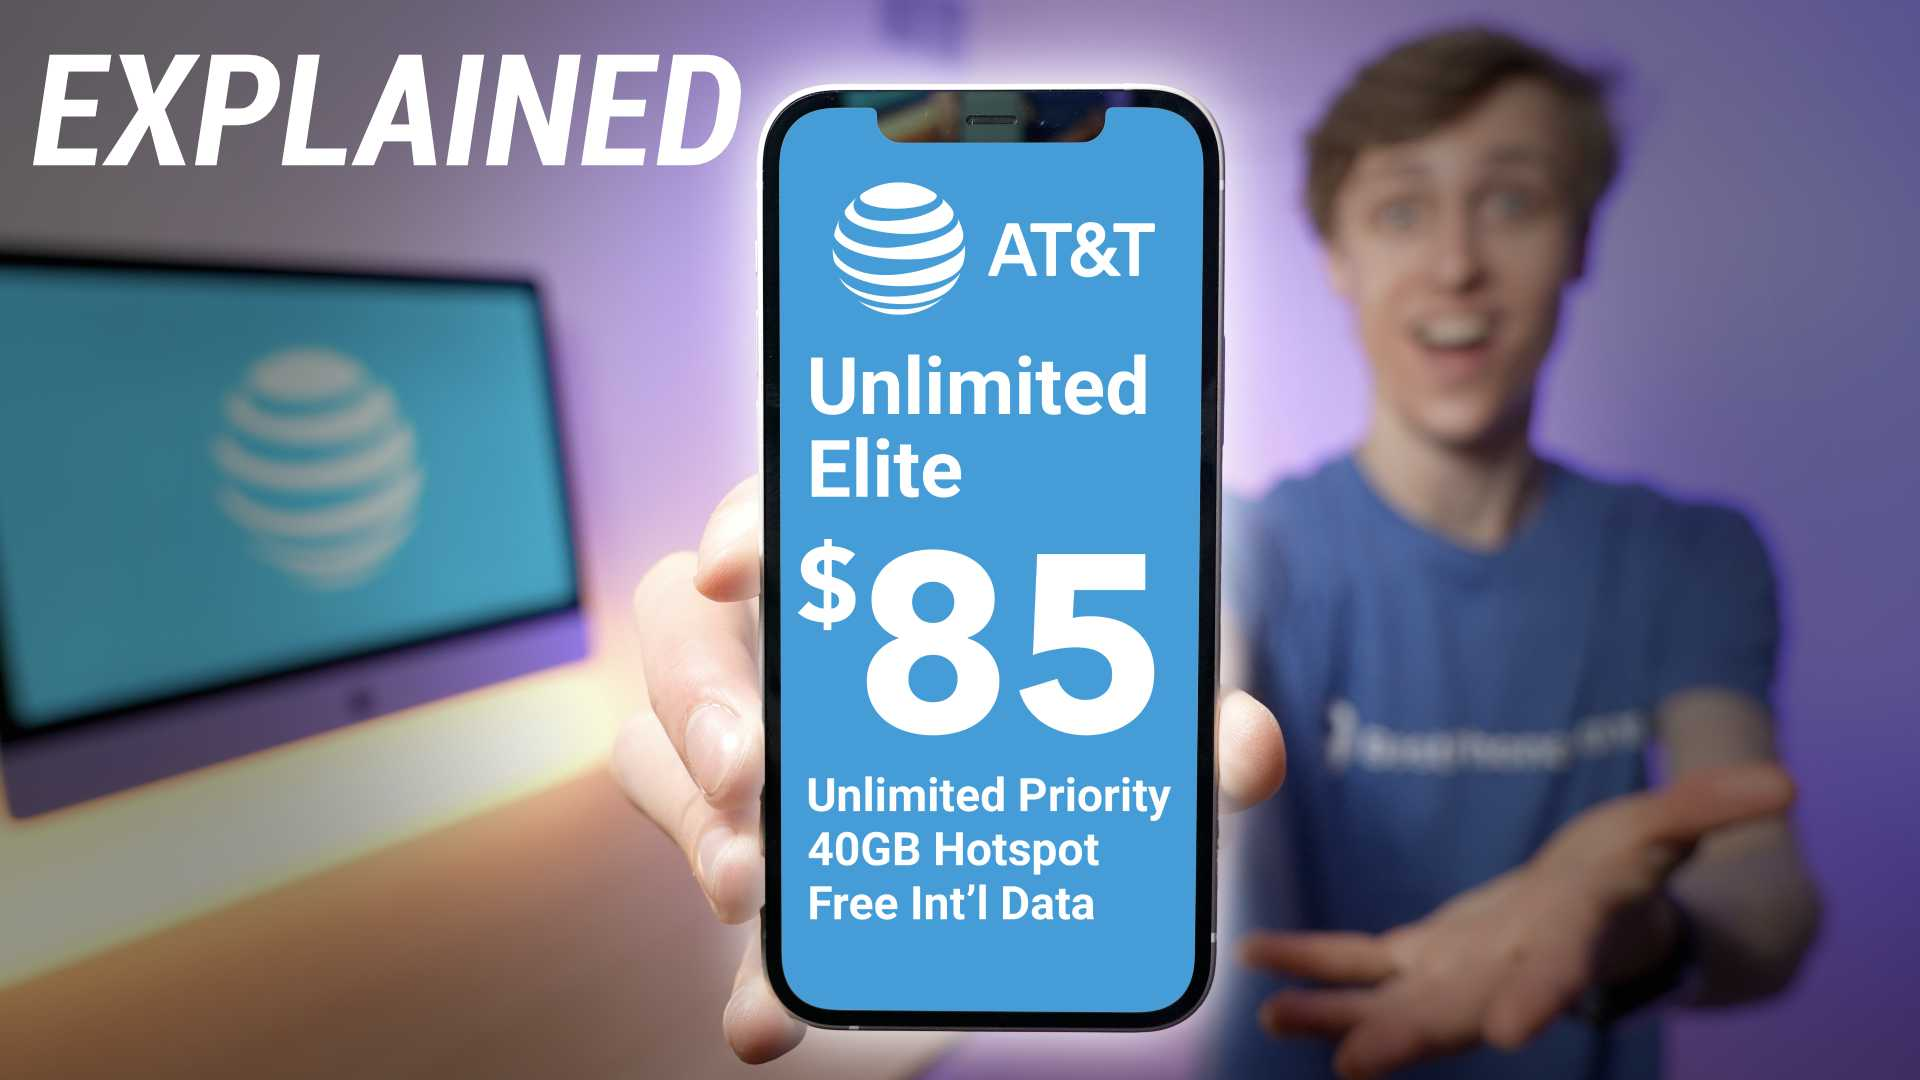 Stetson Doggett holding iPhone 12 with information about AT&T's unlimited elite plan displayed on the phone